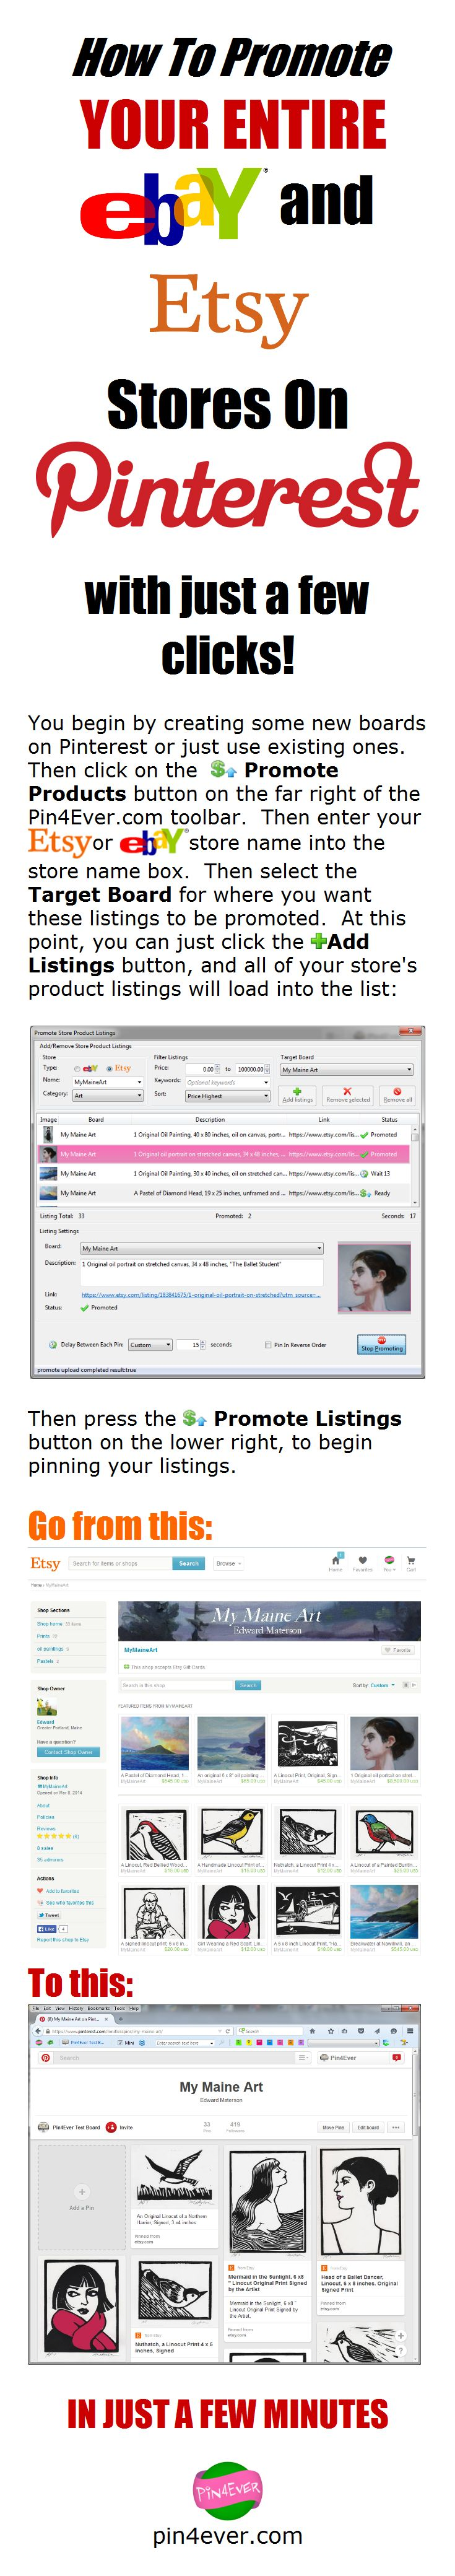 Promote entire eBay and Etsy Stores On Pinterest with just a few clicks! Social media tips at www.seekguidance.co.uk